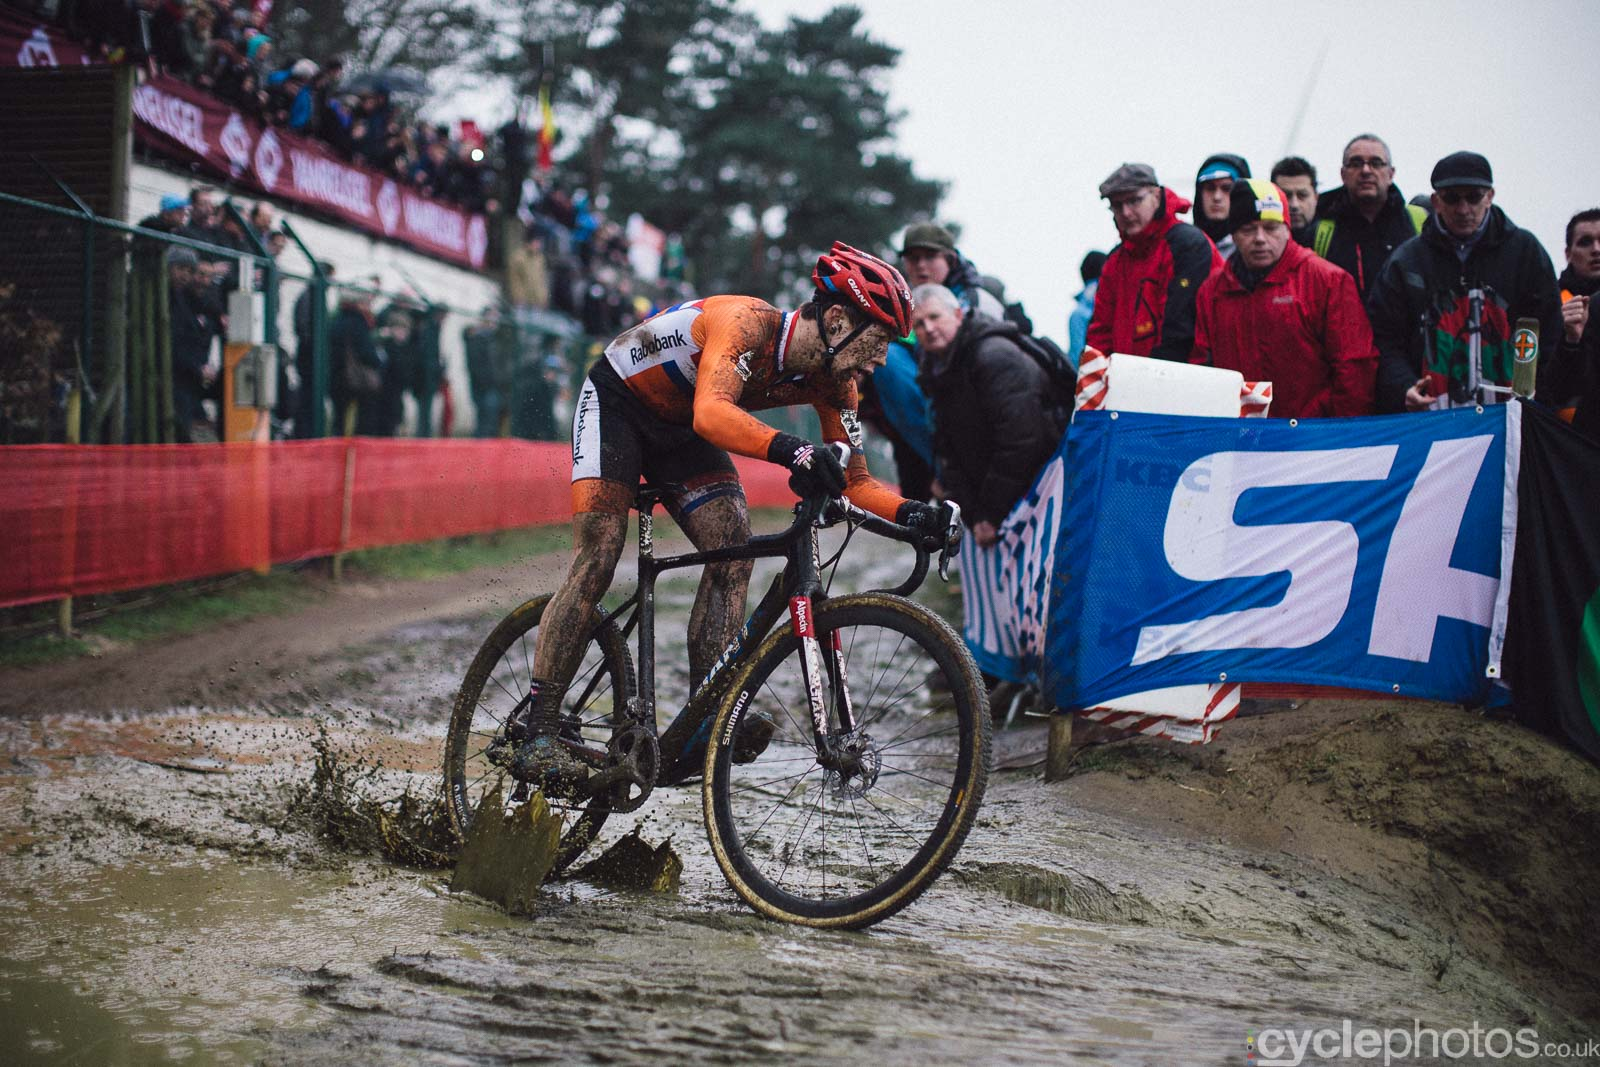 2016-cyclephotos-cyclocross-world-championships-zolder-154826-lars-van-der-haar